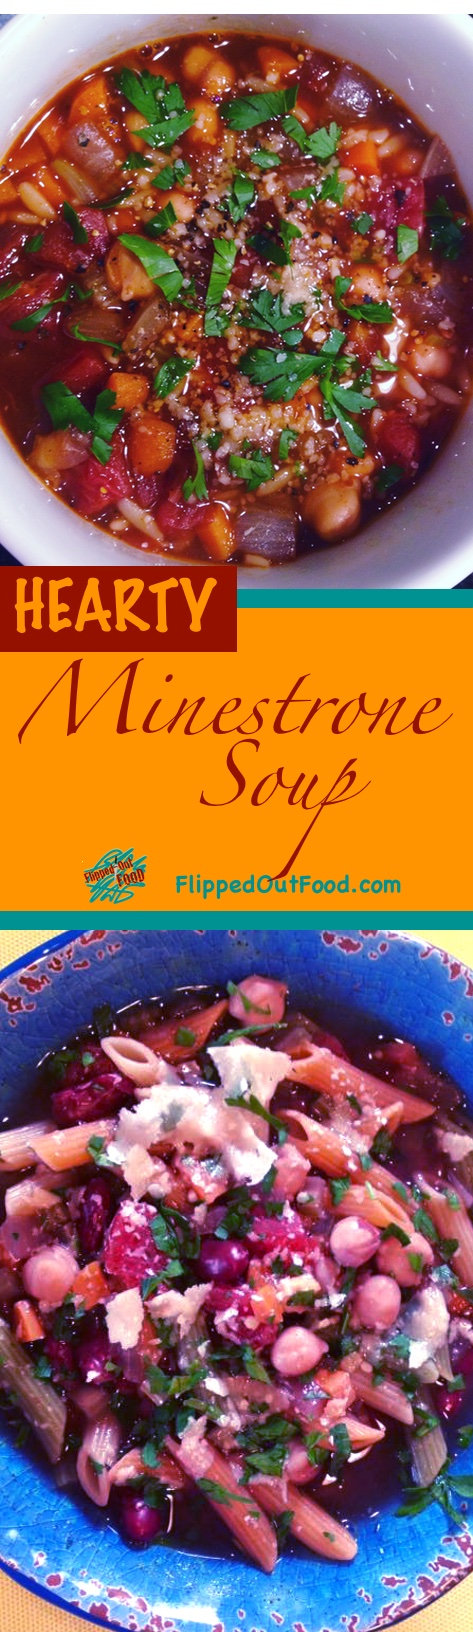 This easy, hearty Italian Minestrone Soup is made almost entirely with staples from your pantry.